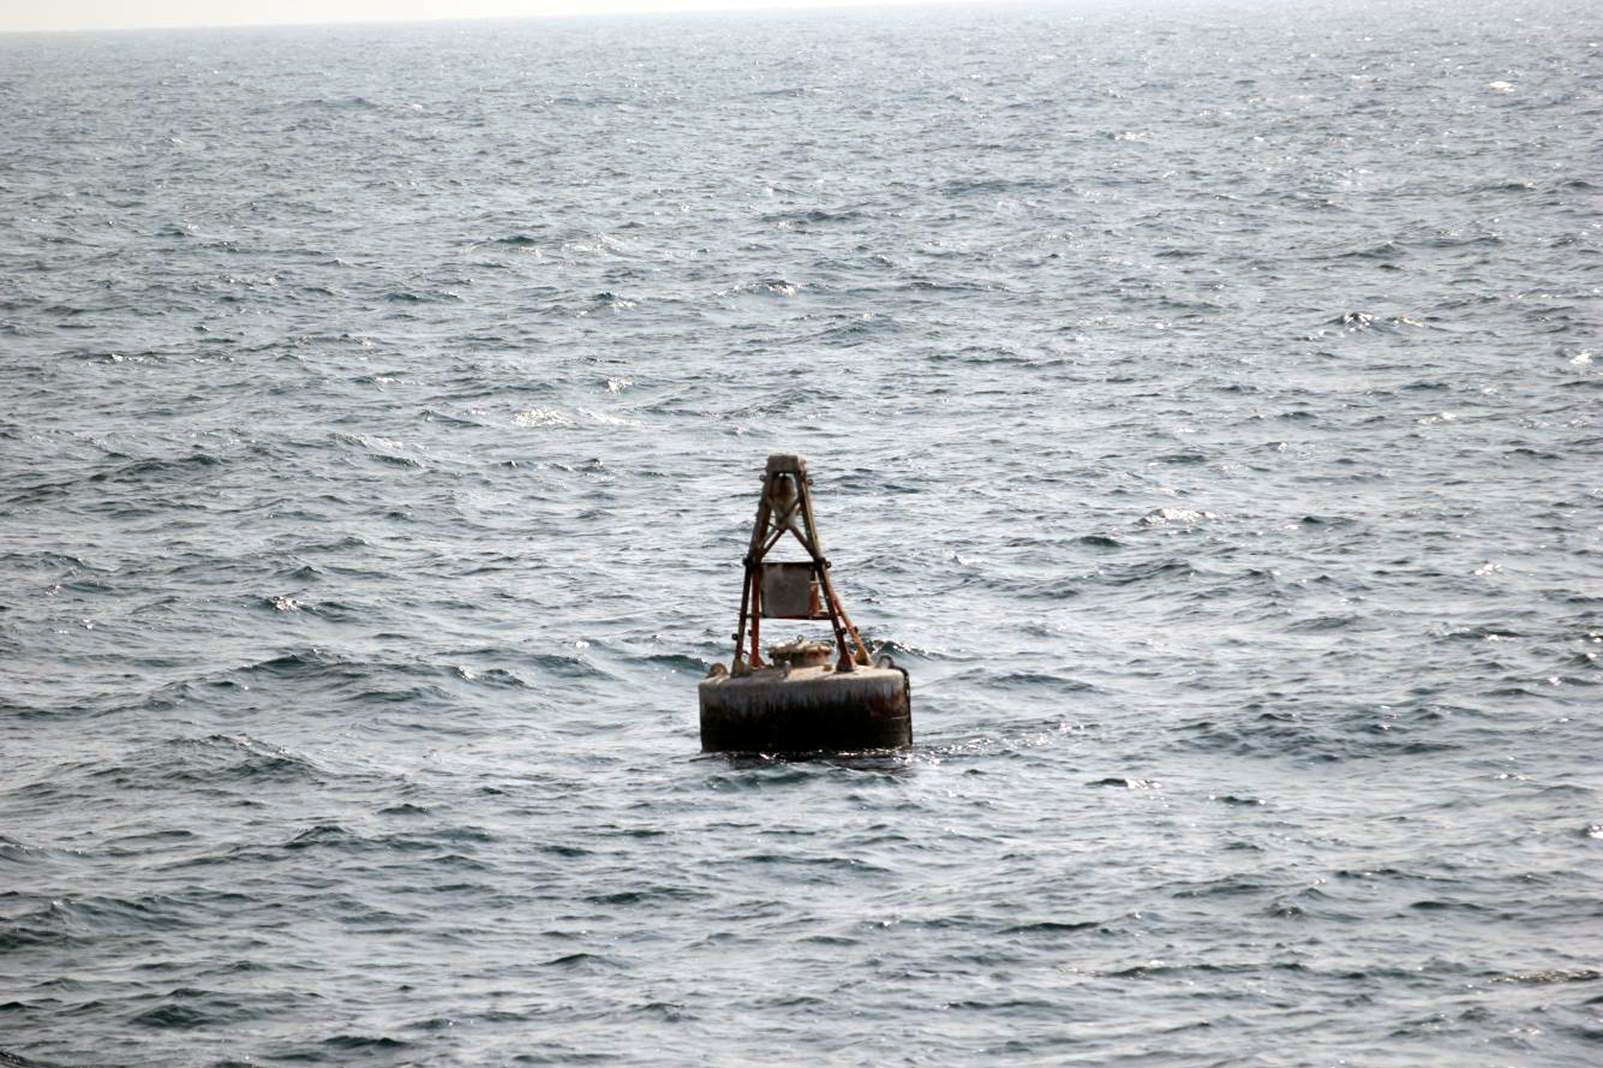 The drifting buoy as spotted by HMS Shoreham